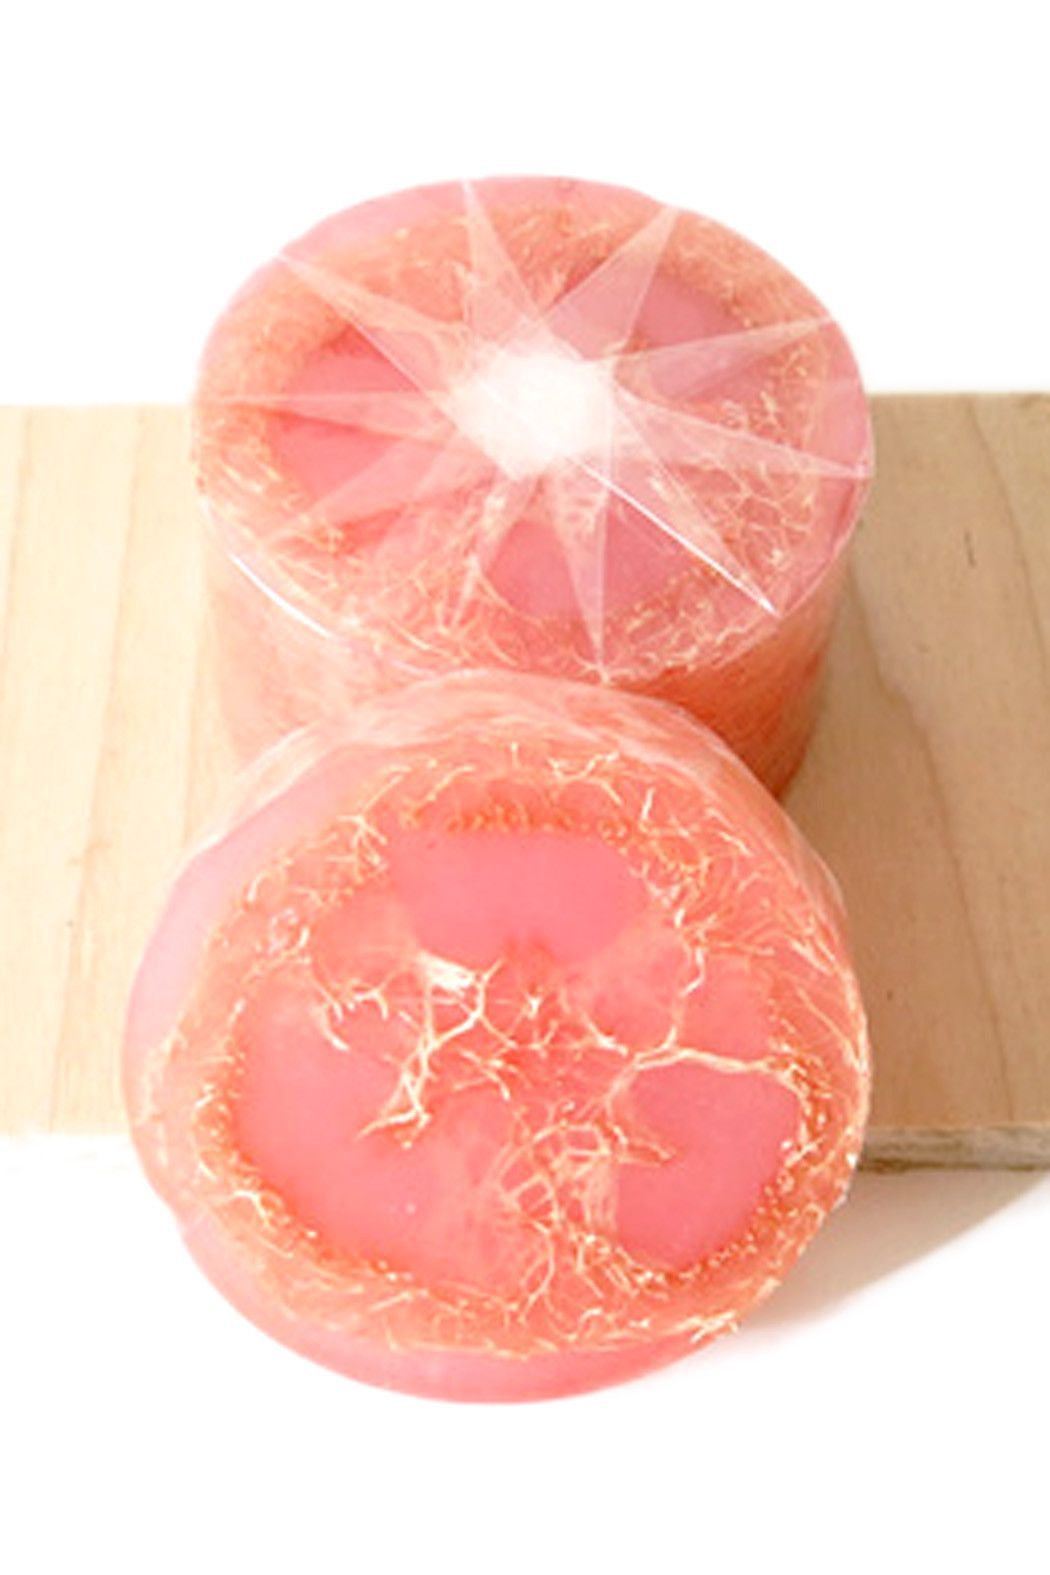 Soap with natural exfoliation one of the best things you